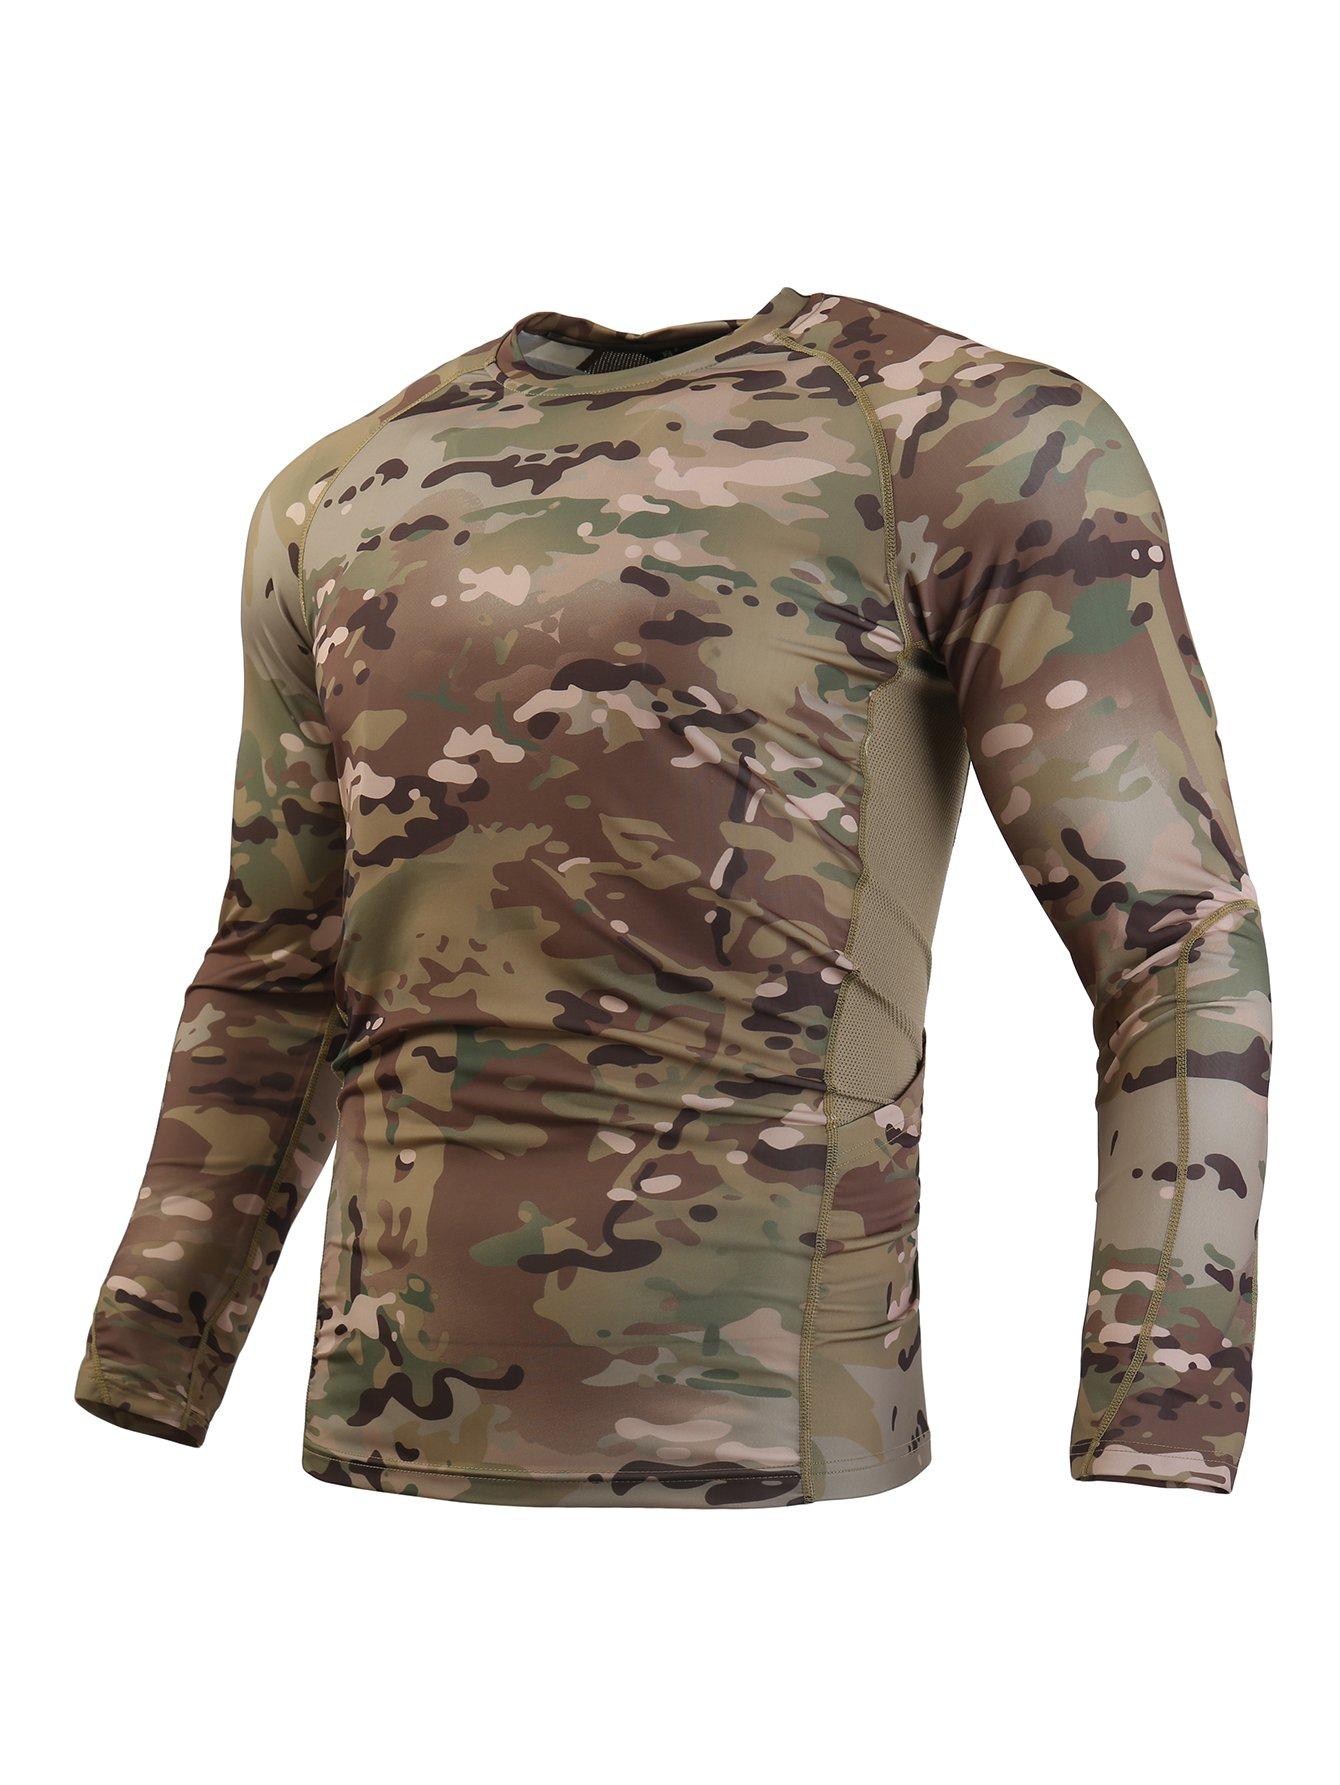 WARCHIEF Tactical Long Sleeve Shirt Camouflage Military T-Shirt Sportswear MC